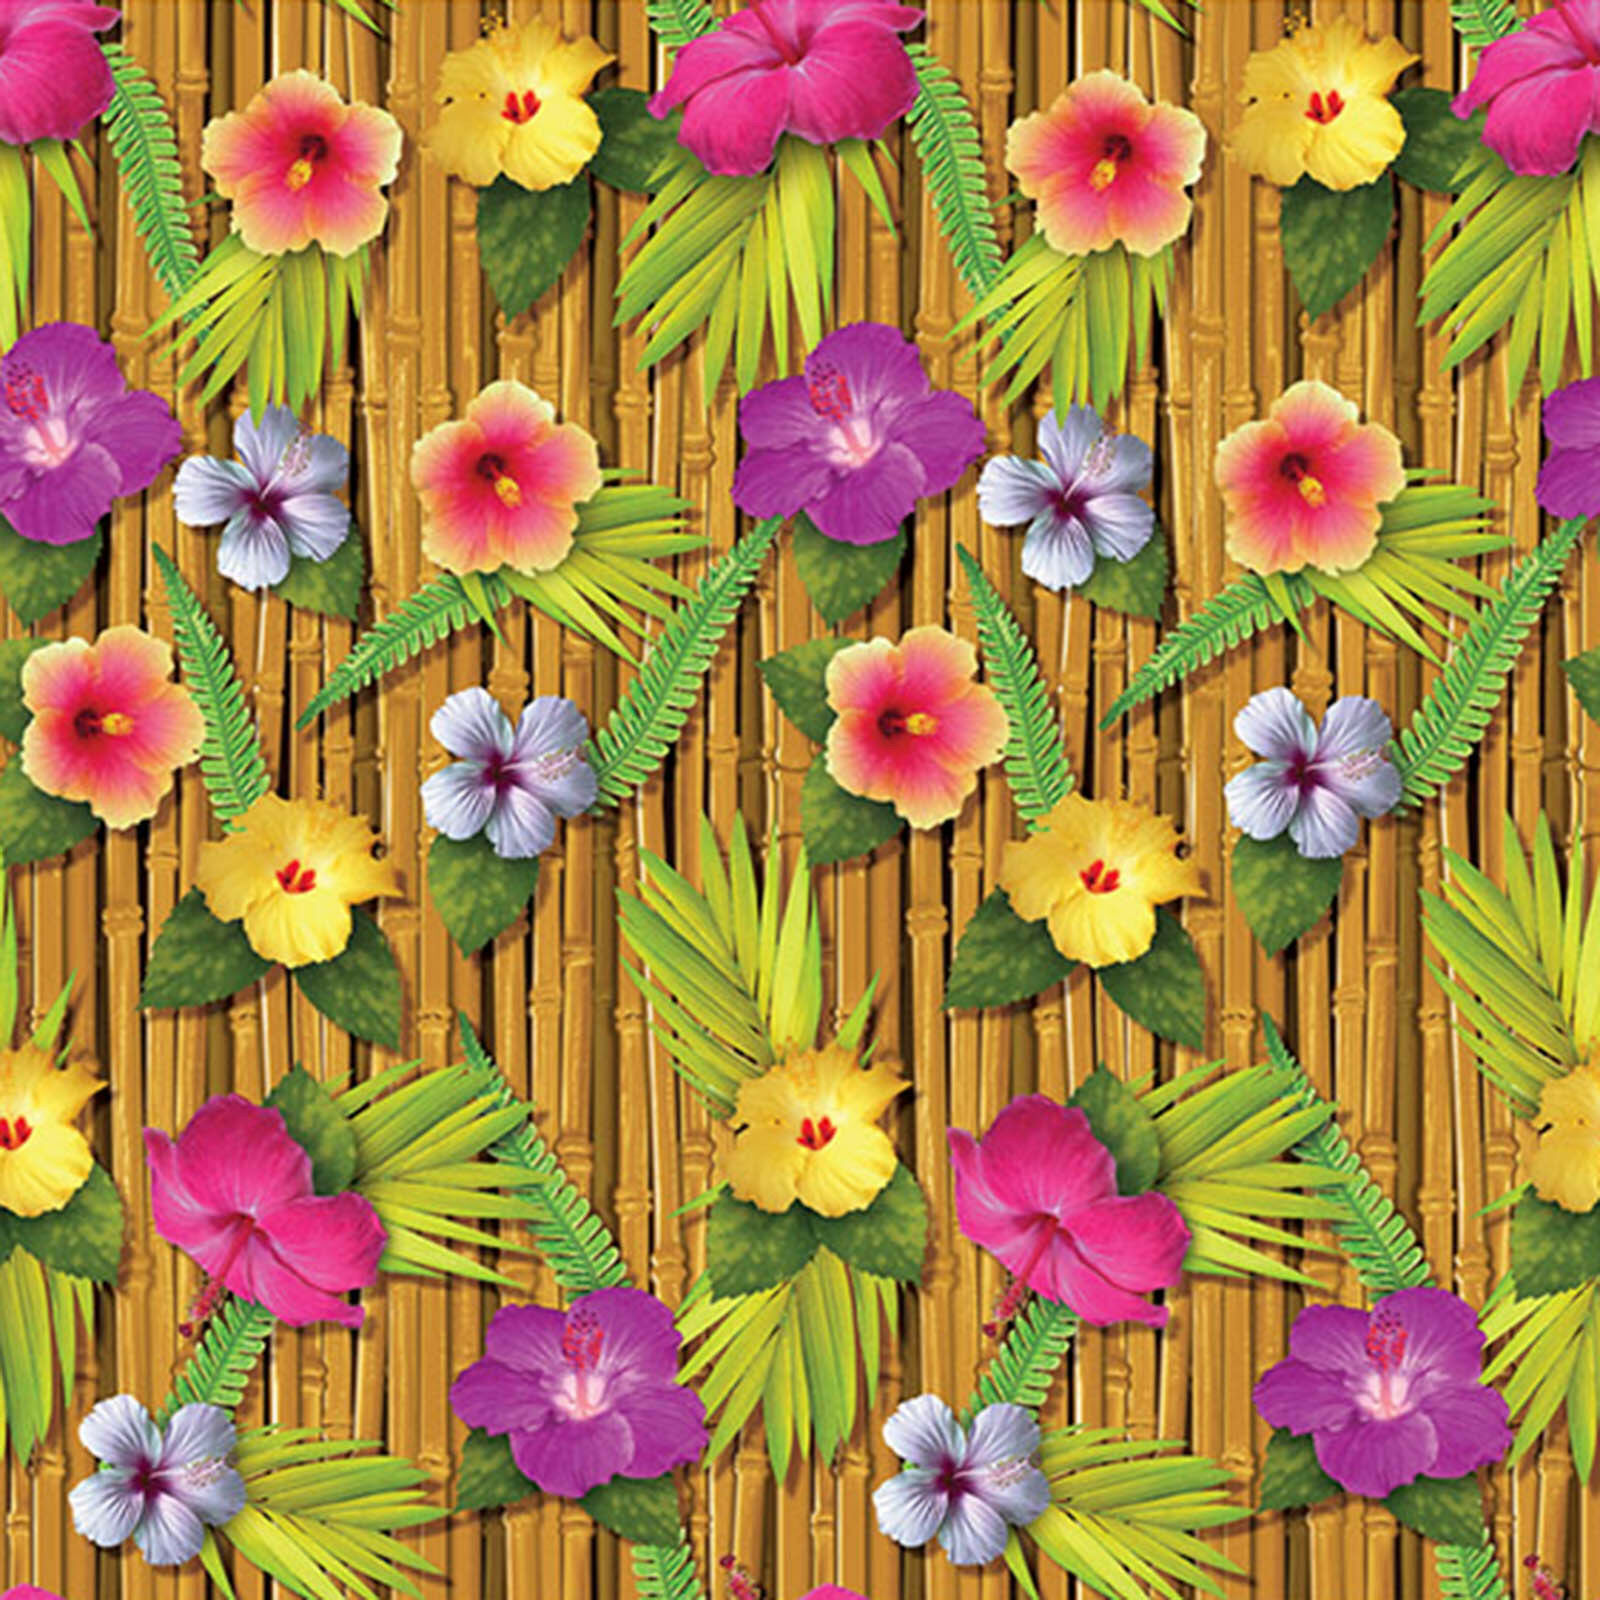 Tropical Luau Party Scene Setter Room Roll Backdrop